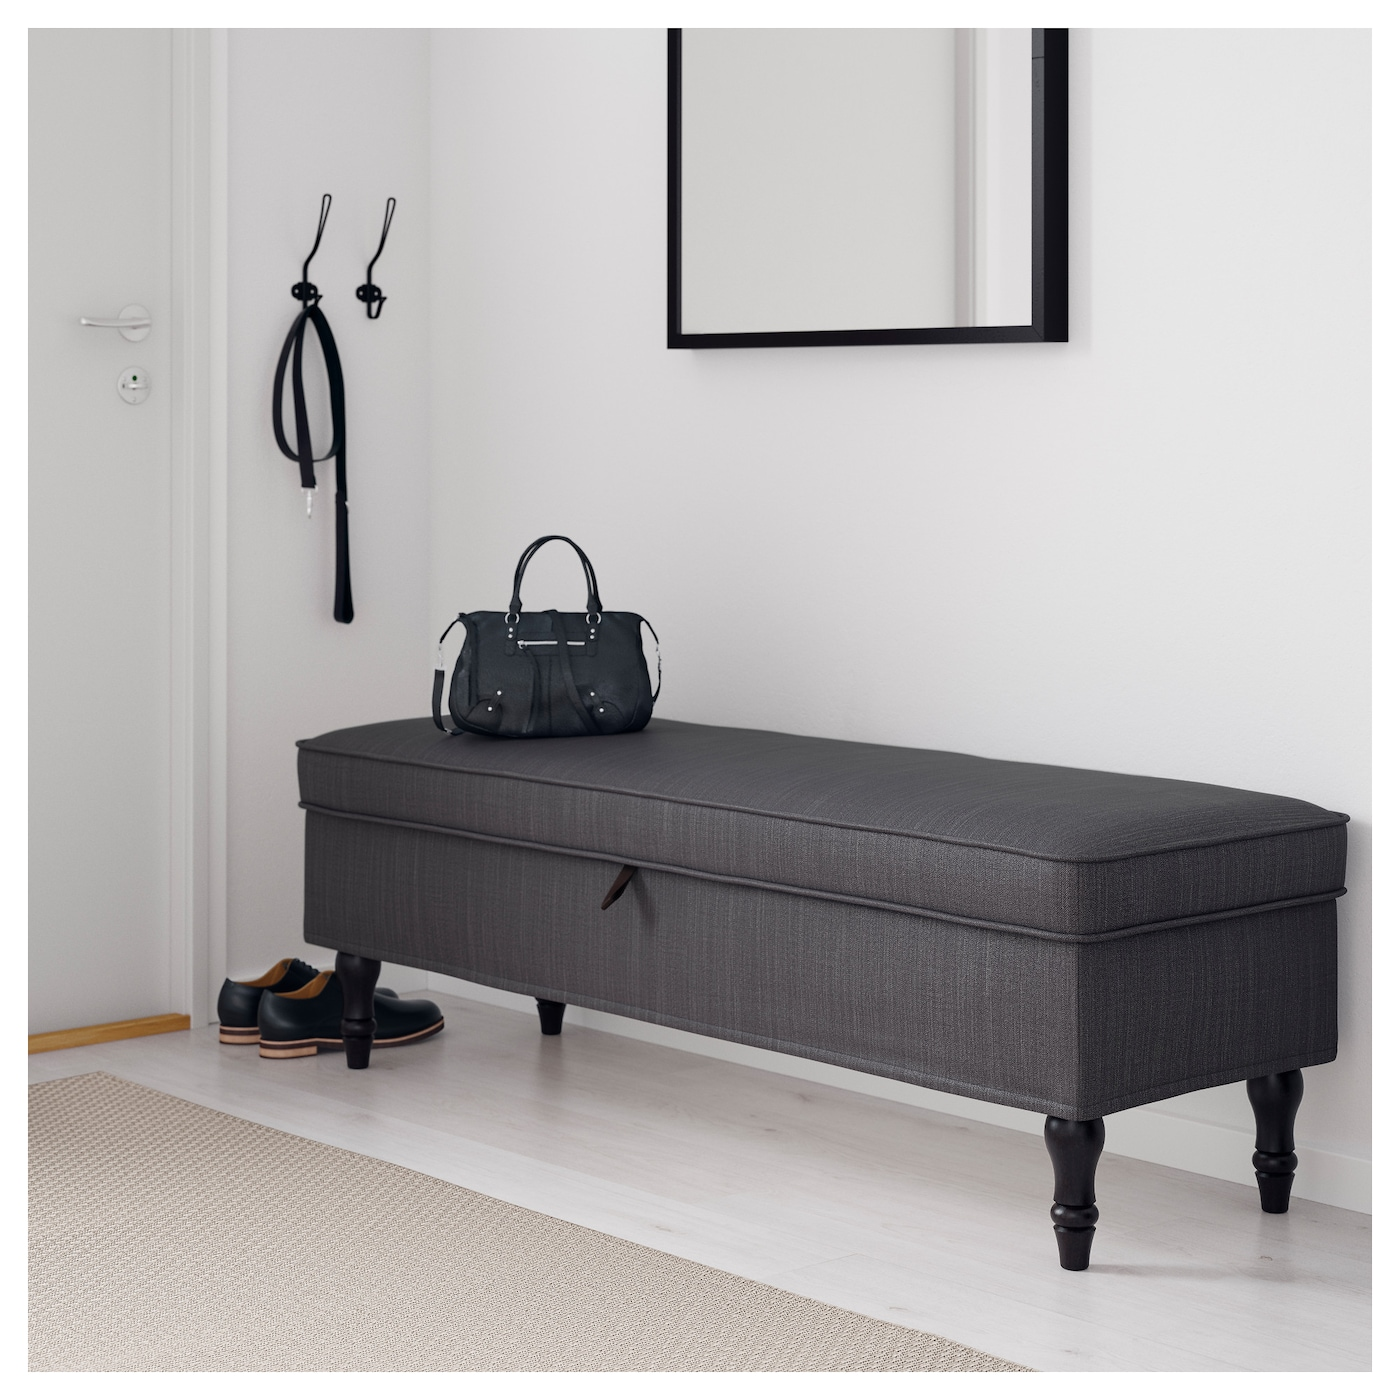 stocksund bench nolhaga dark grey black wood ikea. Black Bedroom Furniture Sets. Home Design Ideas